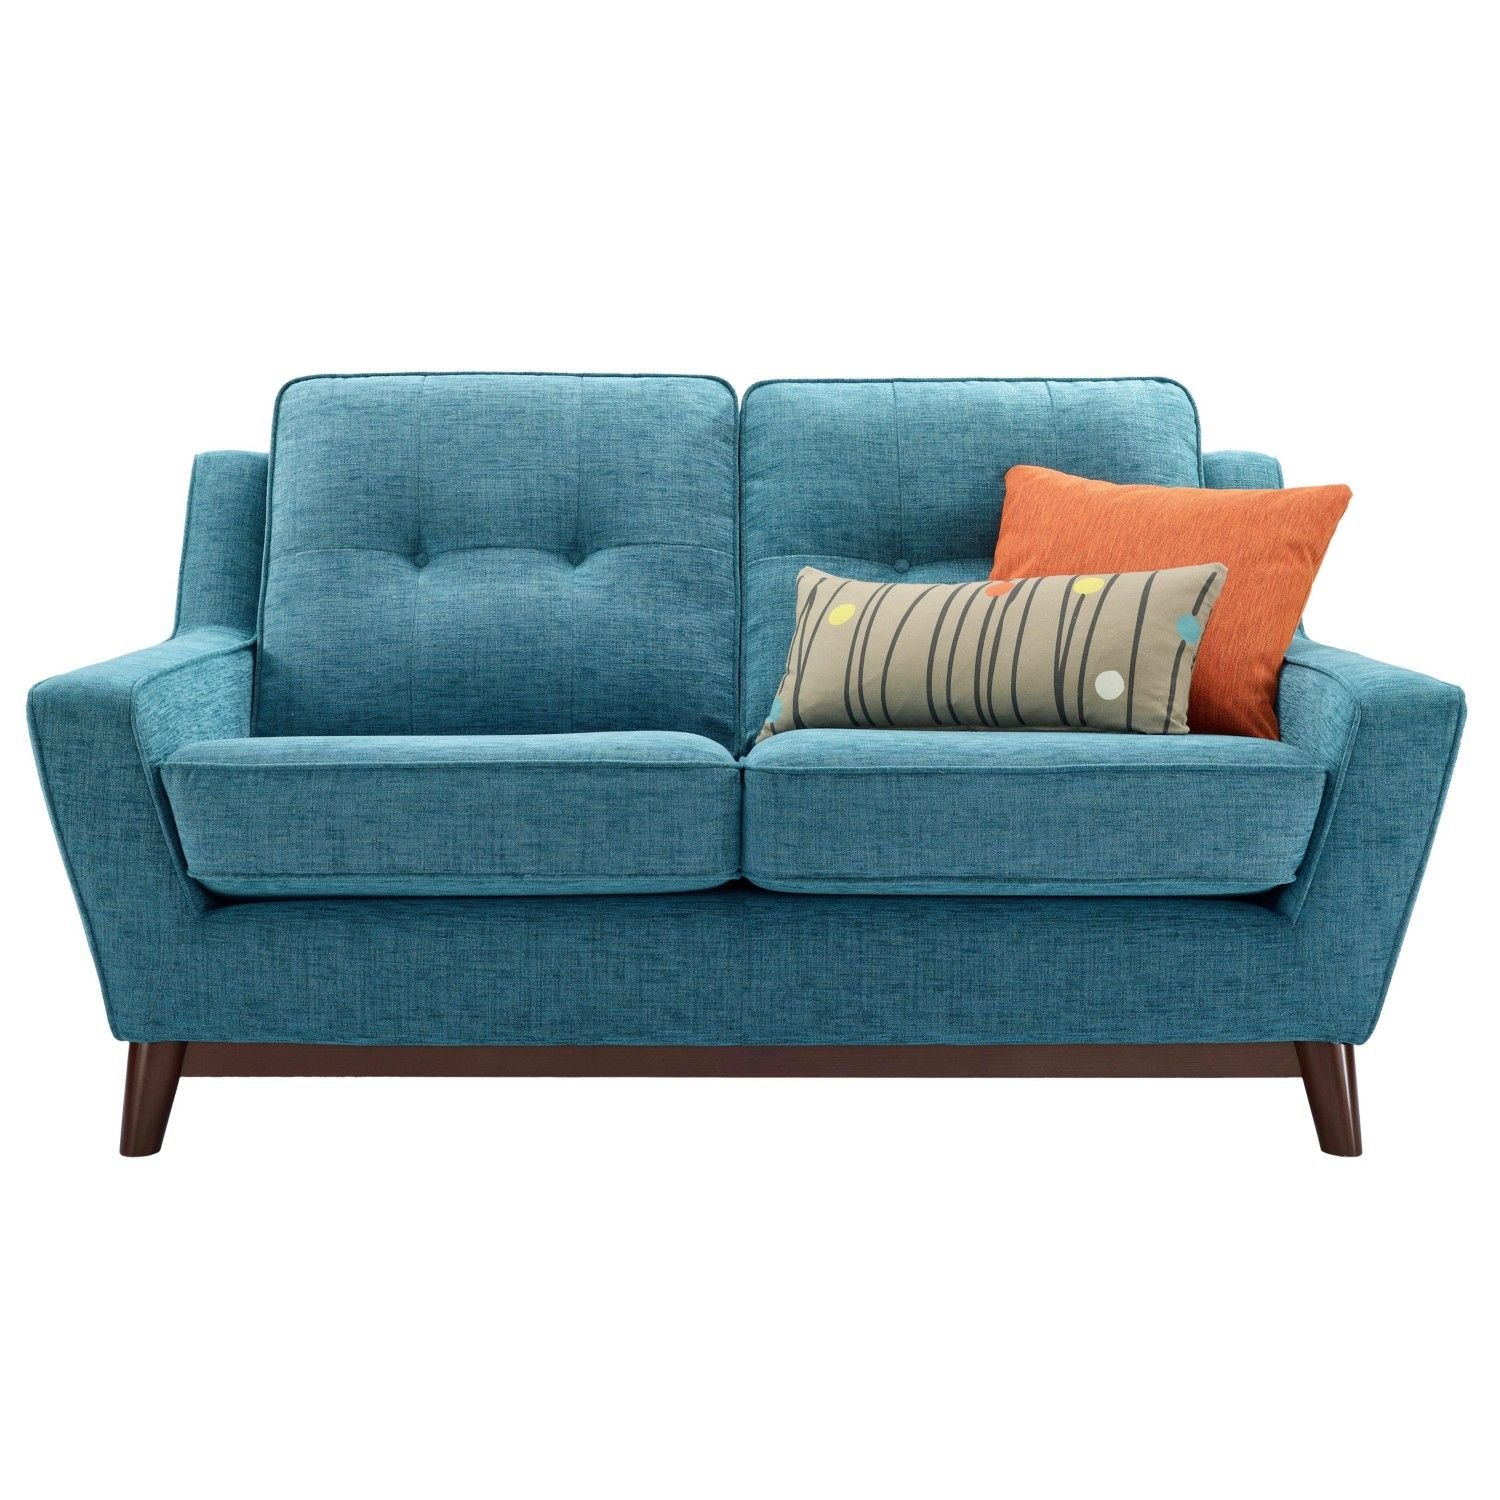 Recliner upholstered chair furniture fabulous light blue padded with microfiber loveseat sofa wooden legs orange cushion